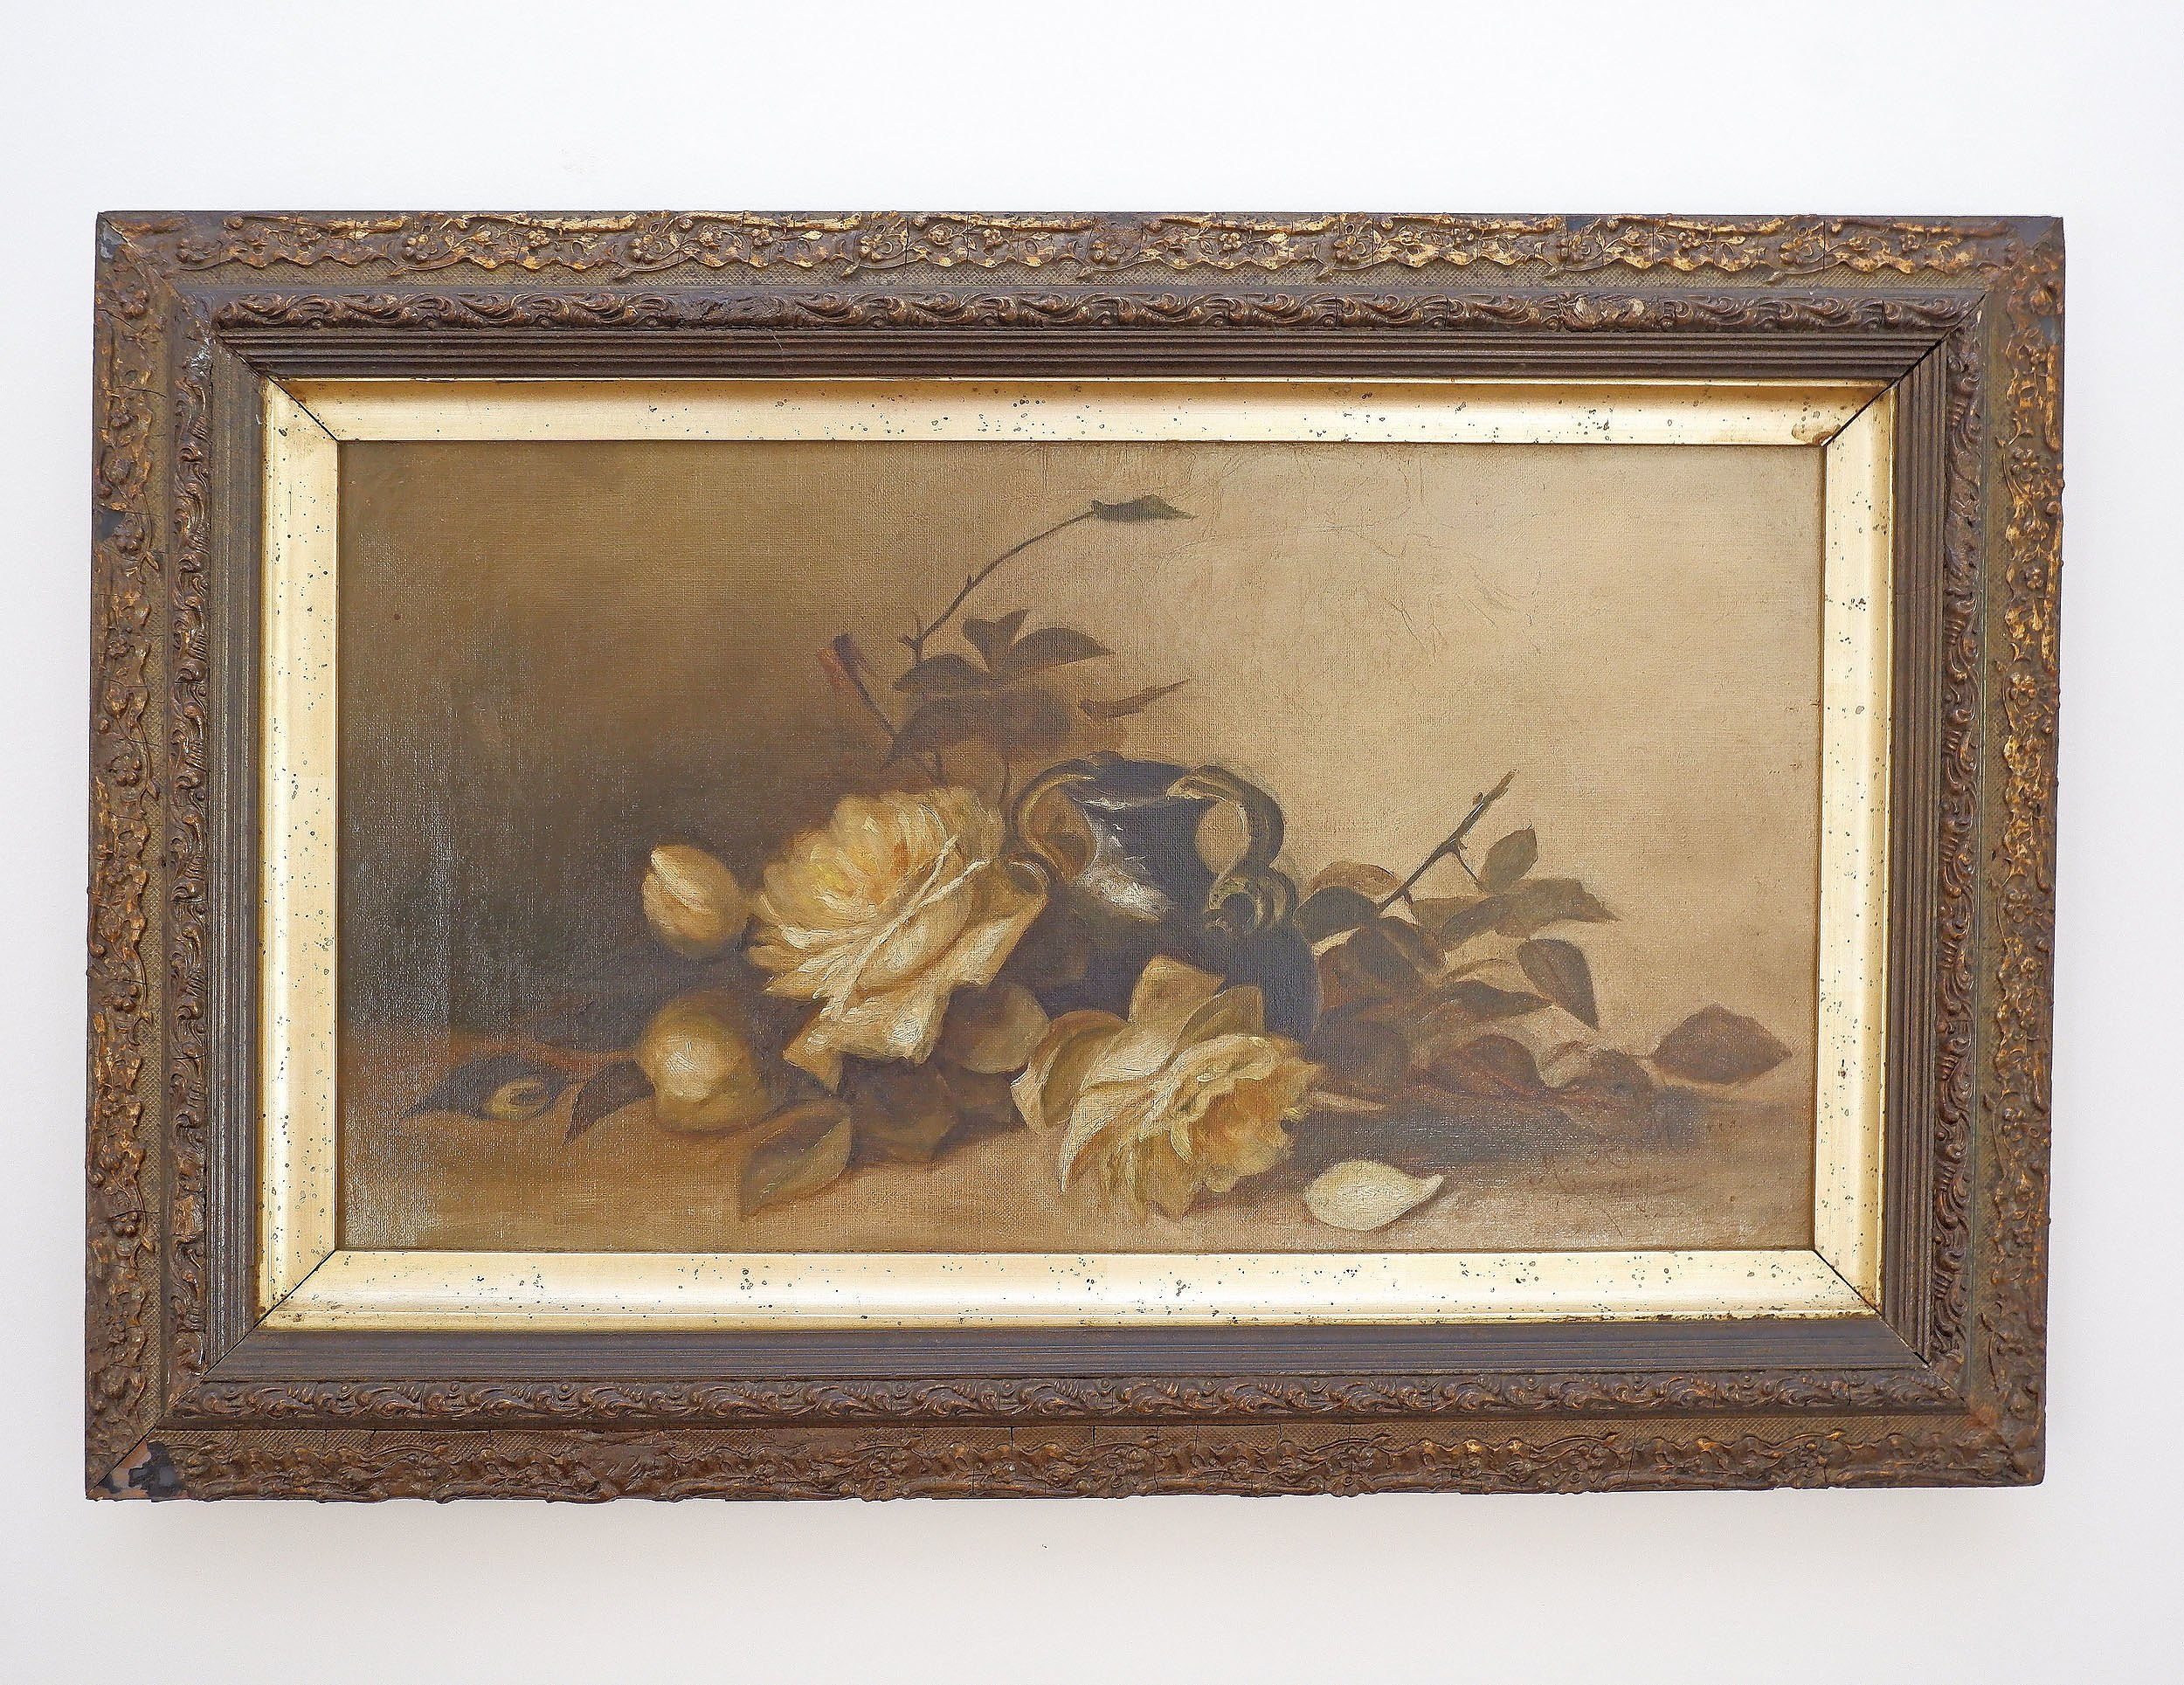 'M.A. Morris (Early 20th Century), Still Life With Roses 1902, Oil on Canvas'